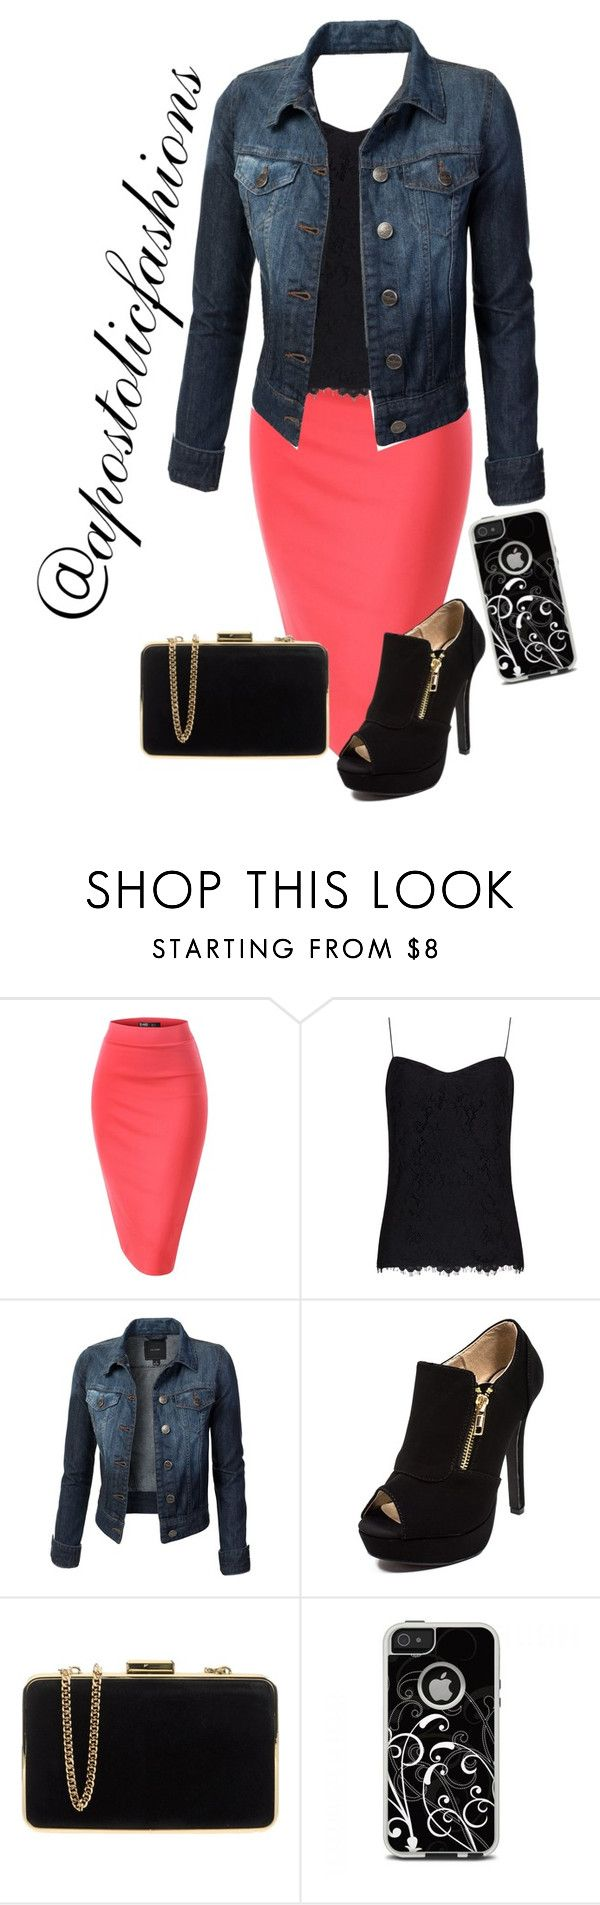 """""""Apostolic Fashions #1434"""" by apostolicfashions on Polyvore featuring Ted Baker, MICHAEL Michael Kors and OtterBox"""